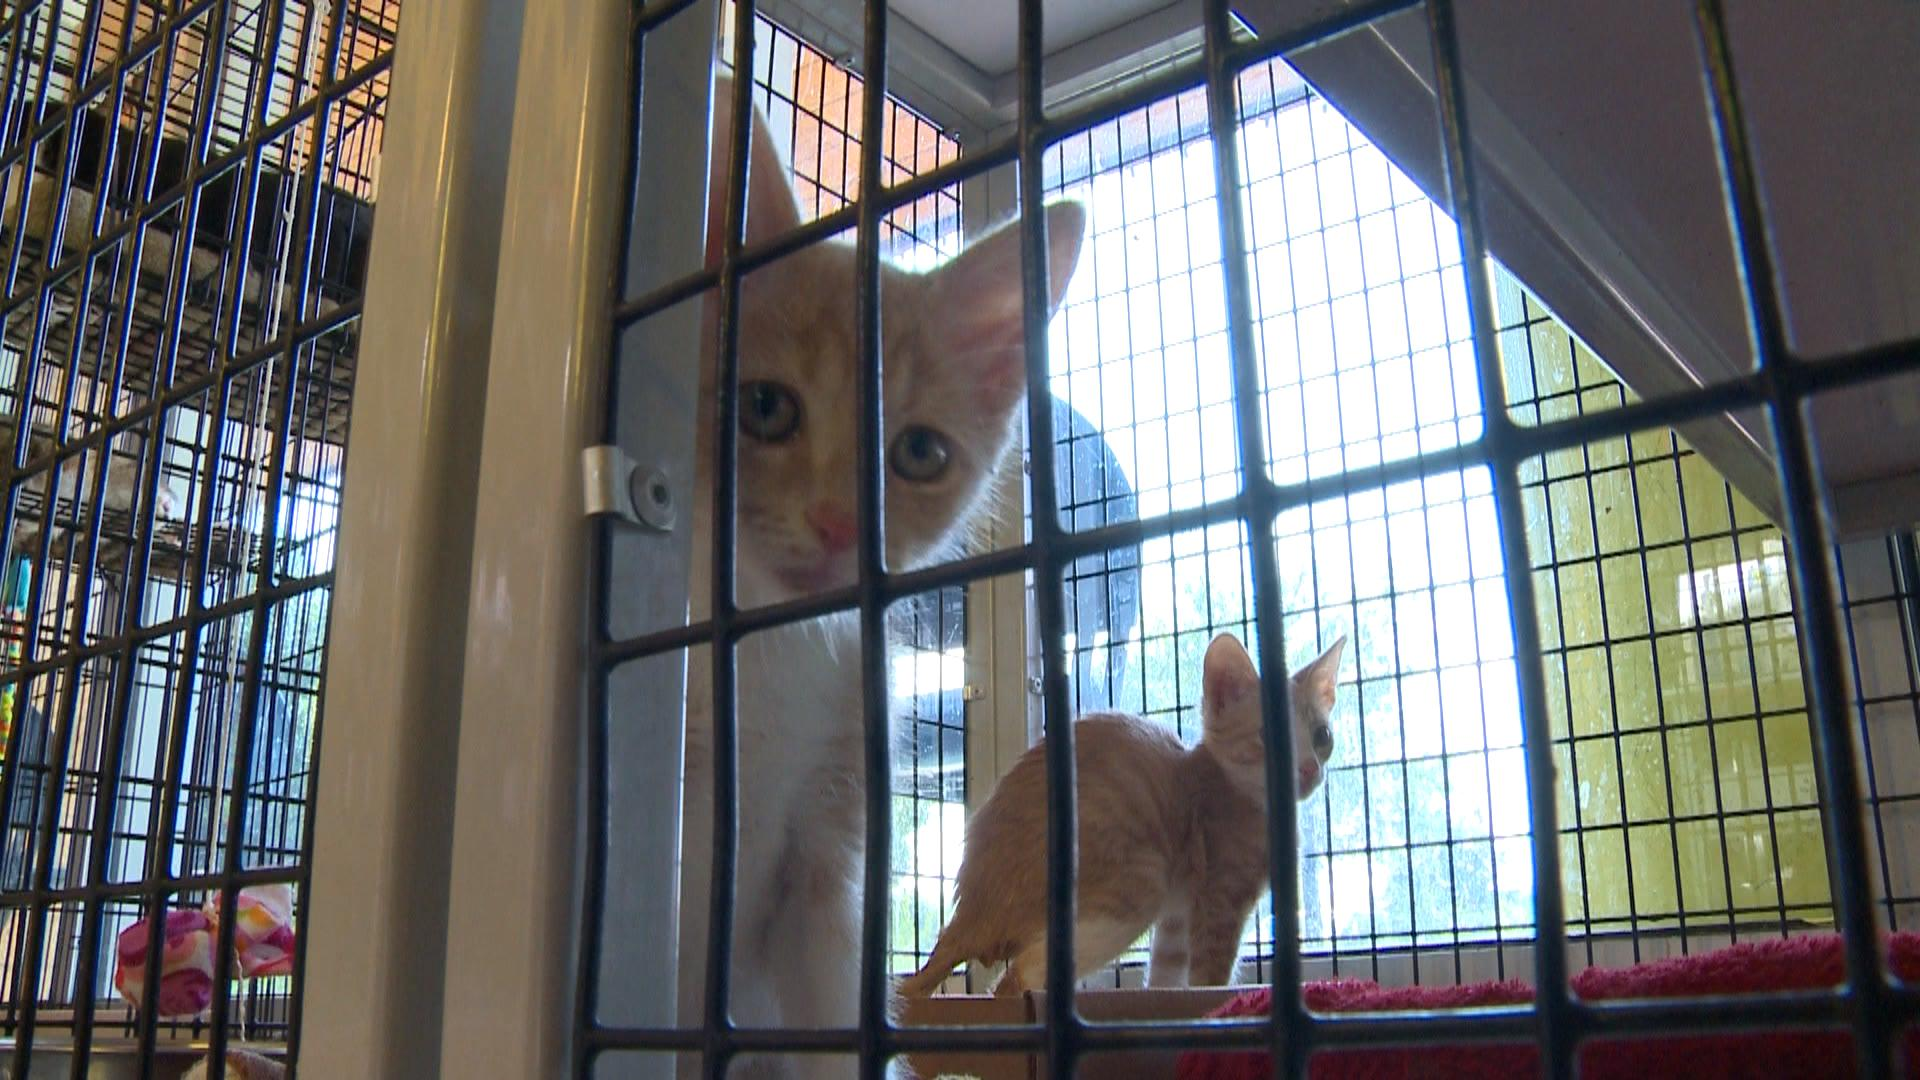 Cats at Williamson County Regional Animal Shelter on Aug. 10, 2017. (KXAN Photo_Lauren Kravets)_523522